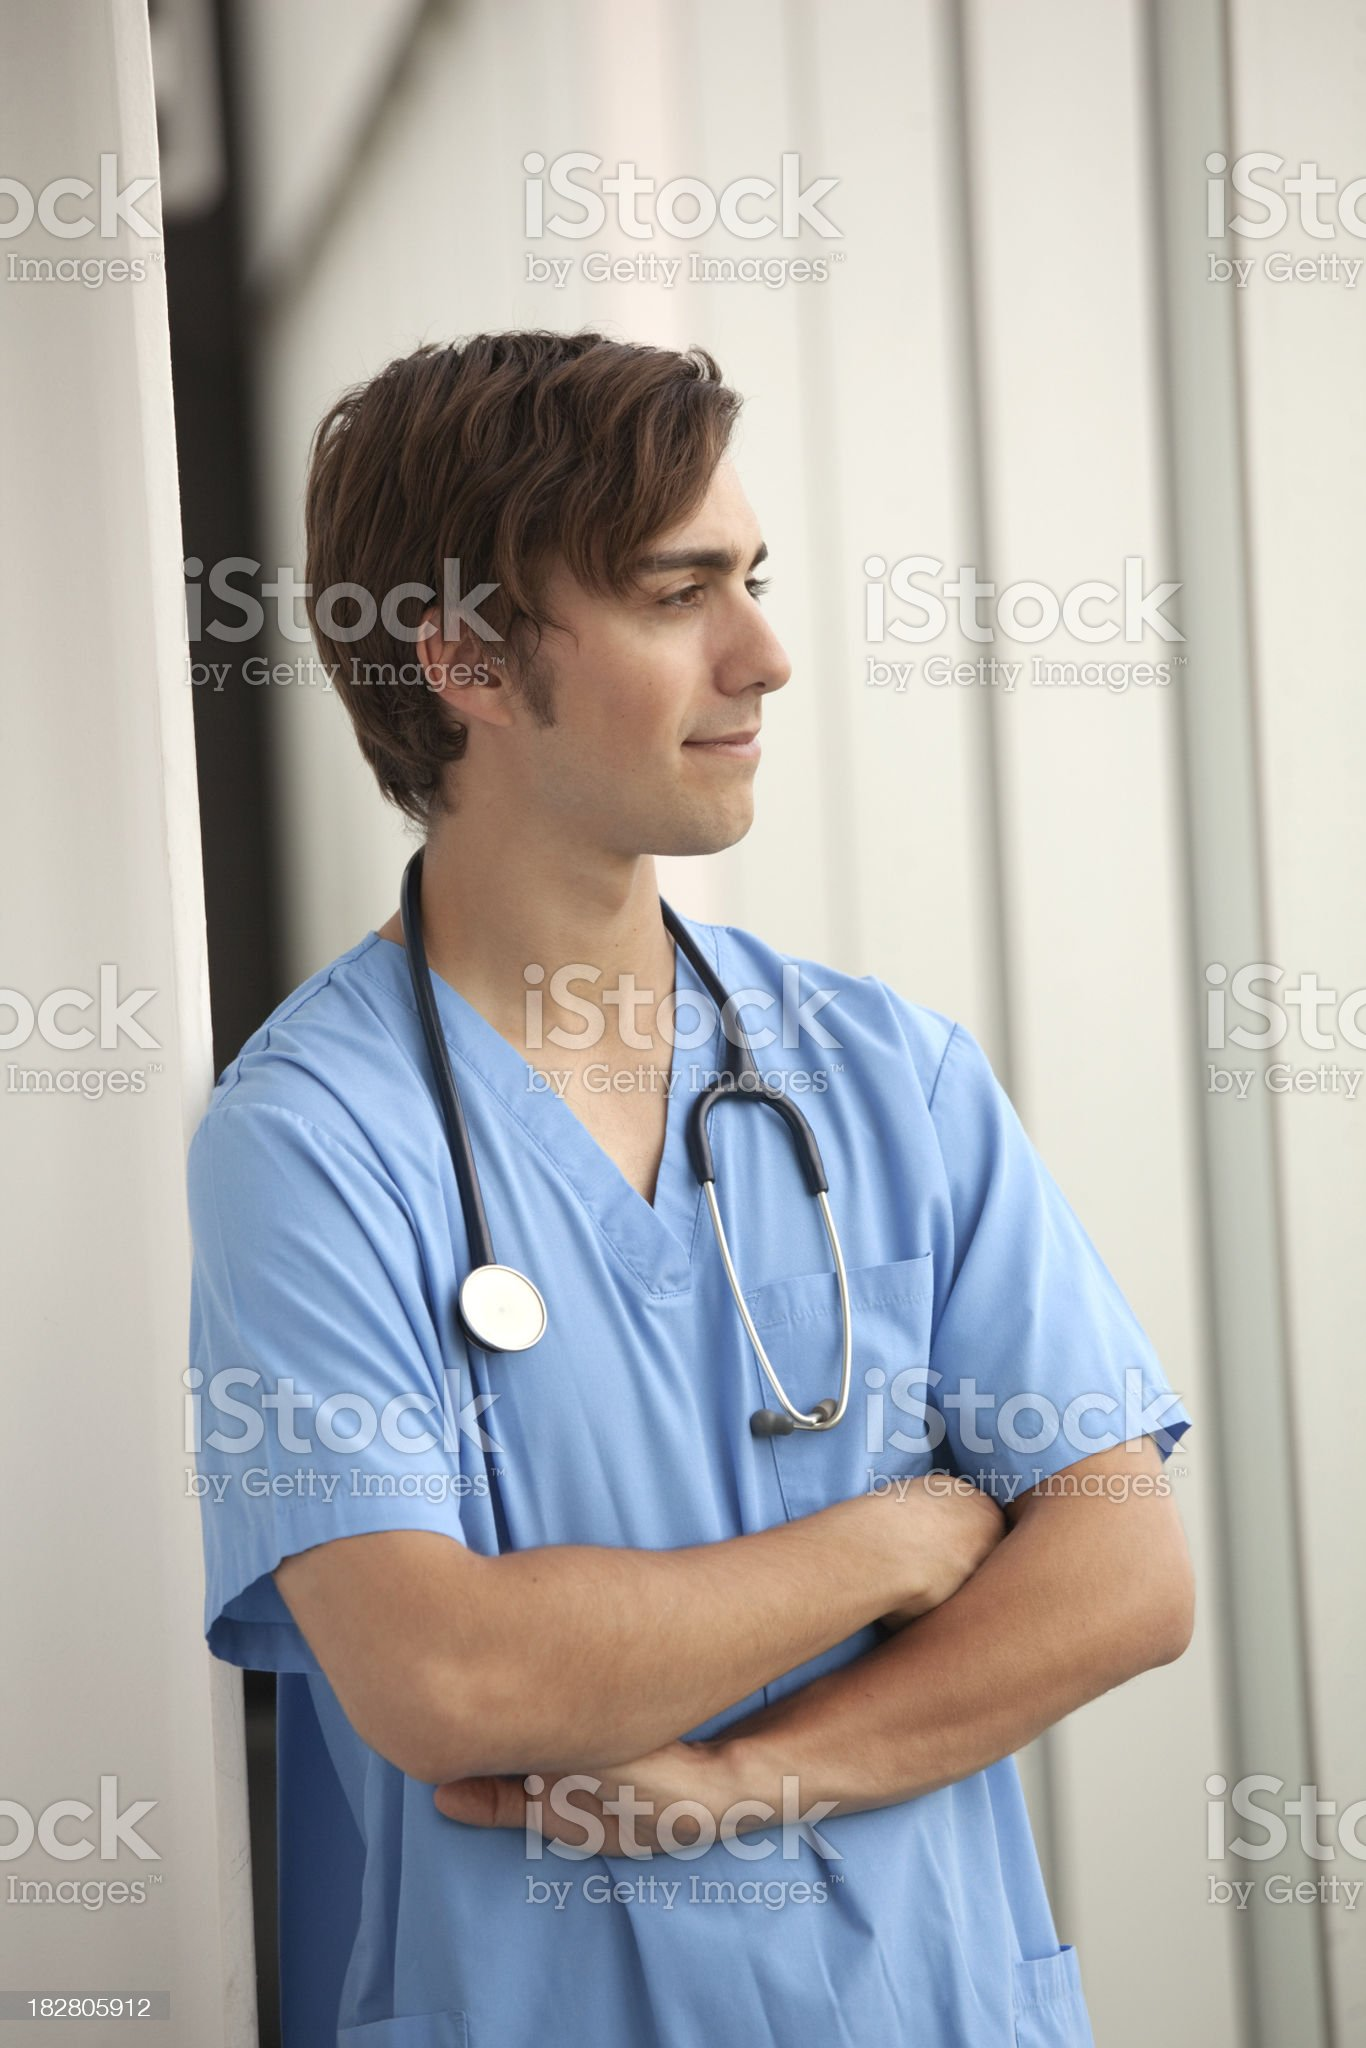 Hospital - Medical Worker royalty-free stock photo